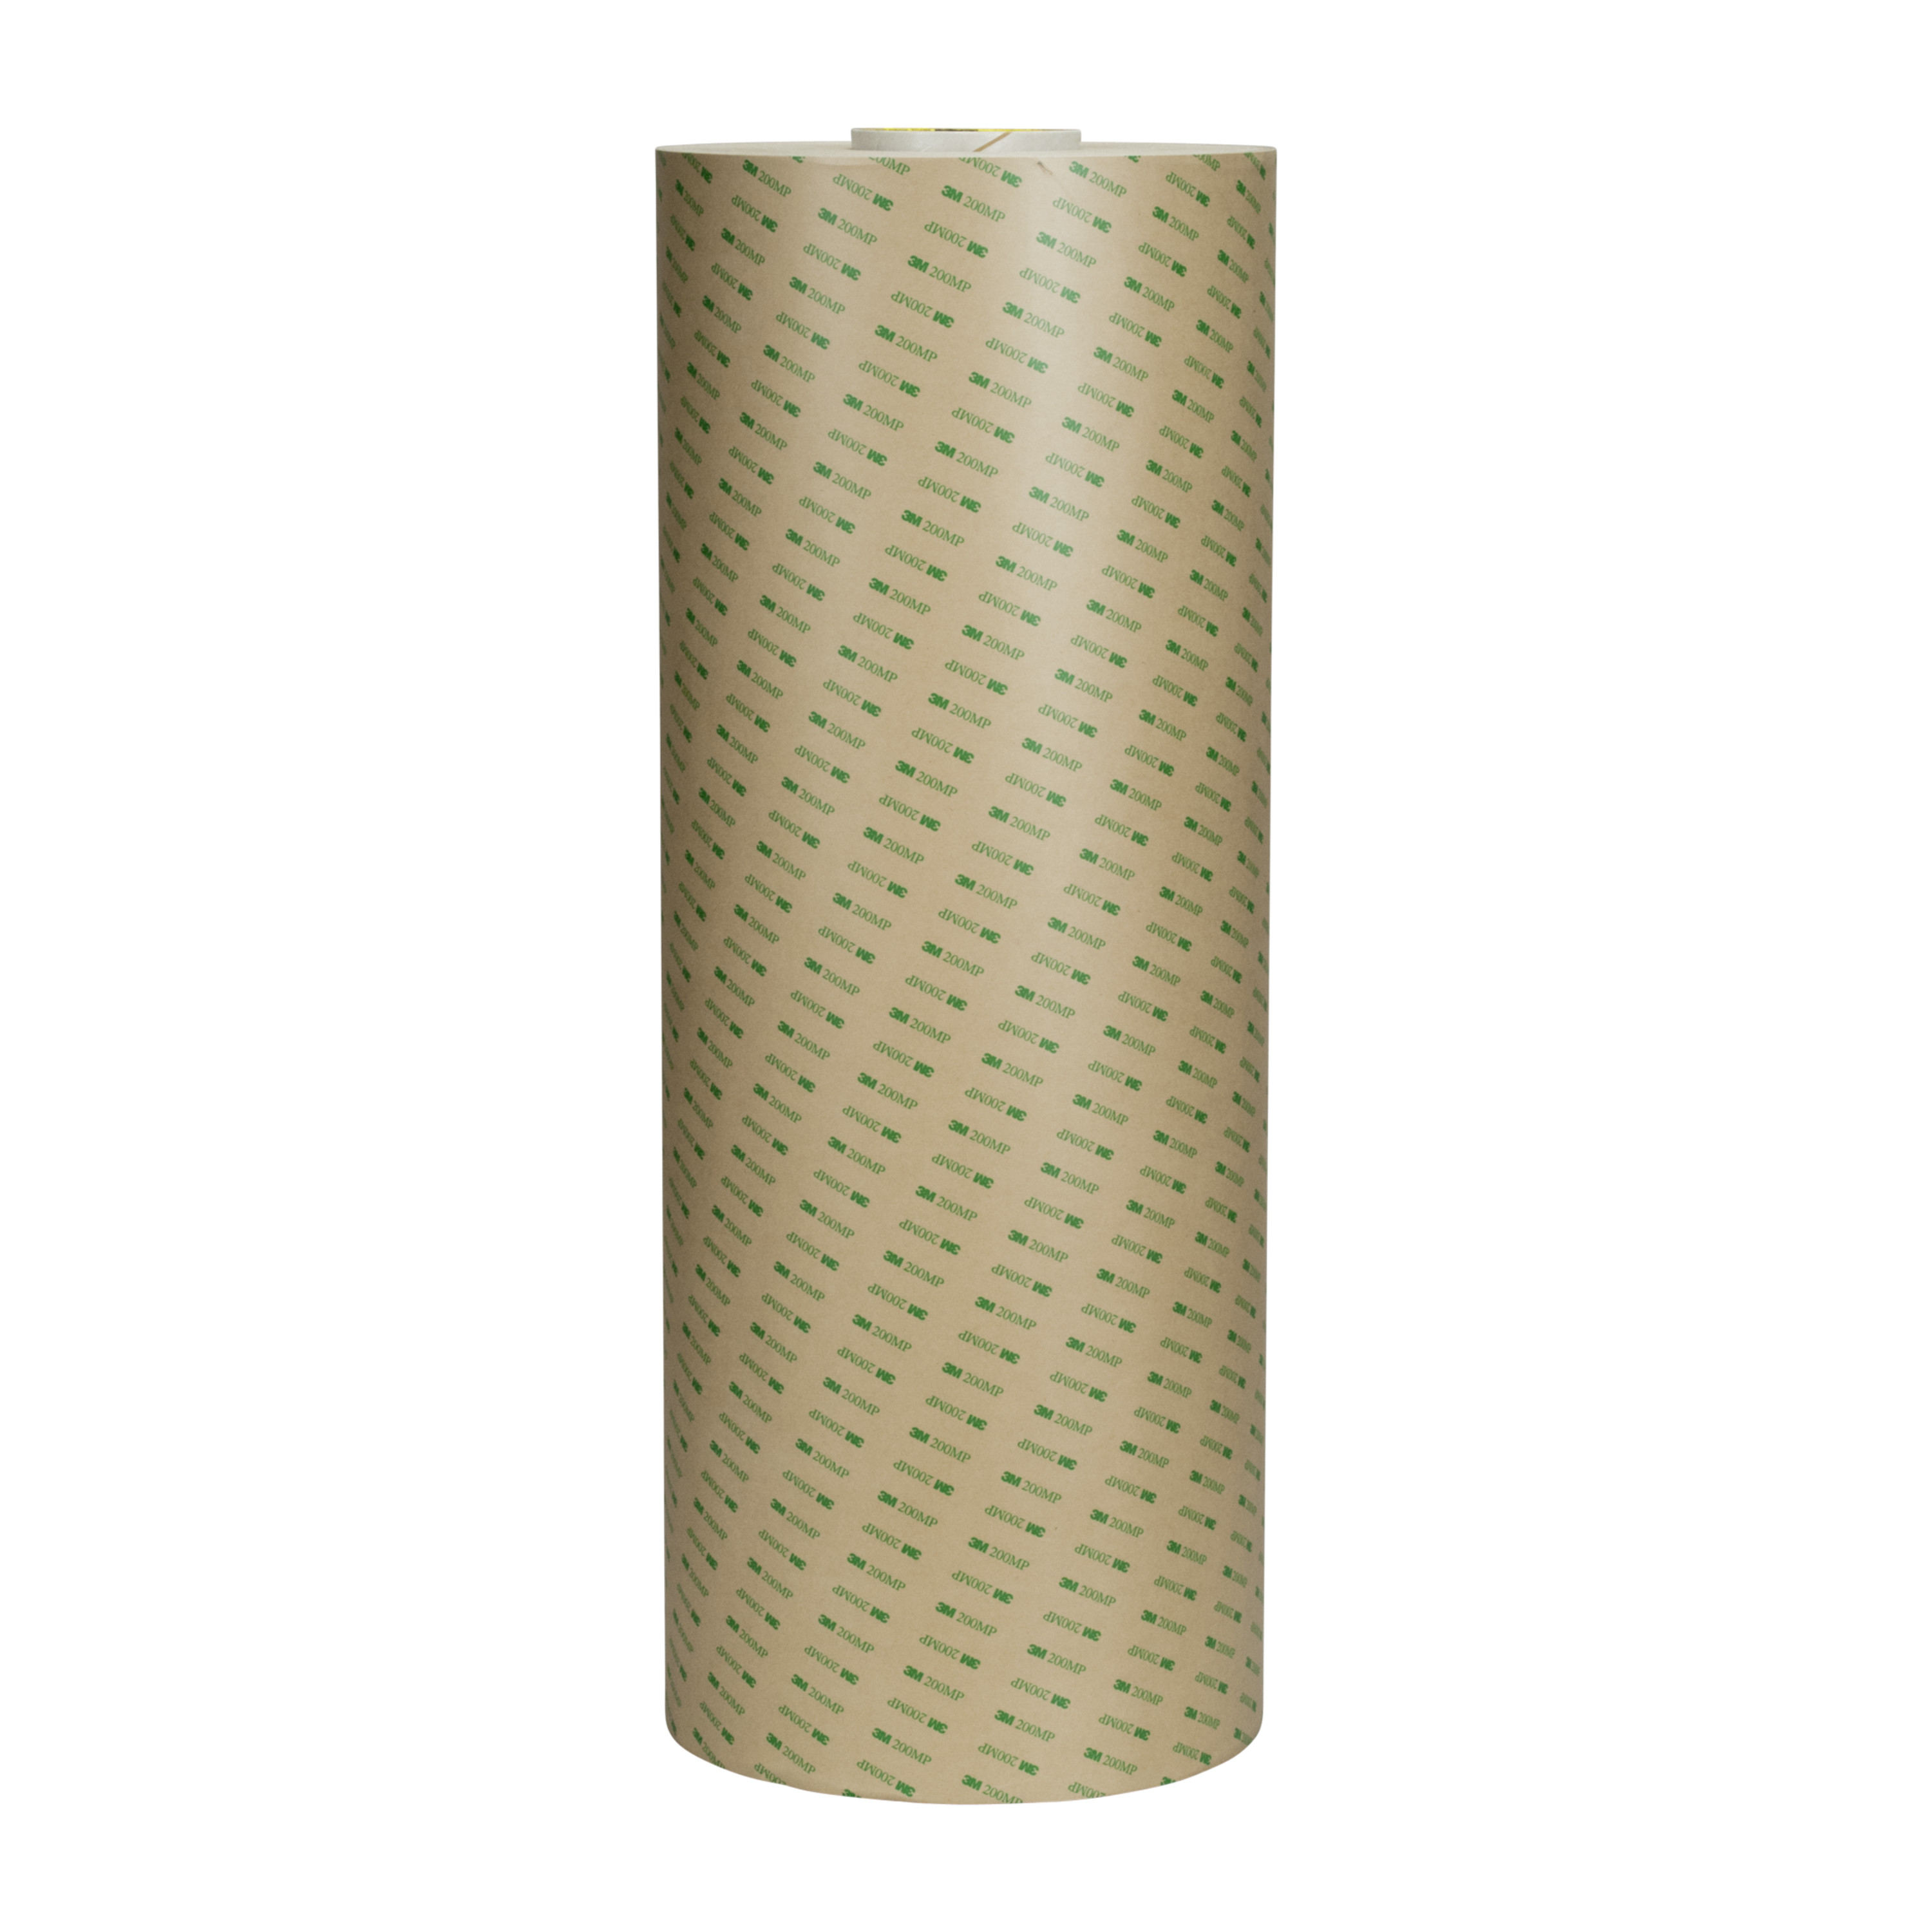 3M™ Adhesive Transfer Tape 9667MP, Clear, 2 mil, Roll, Config